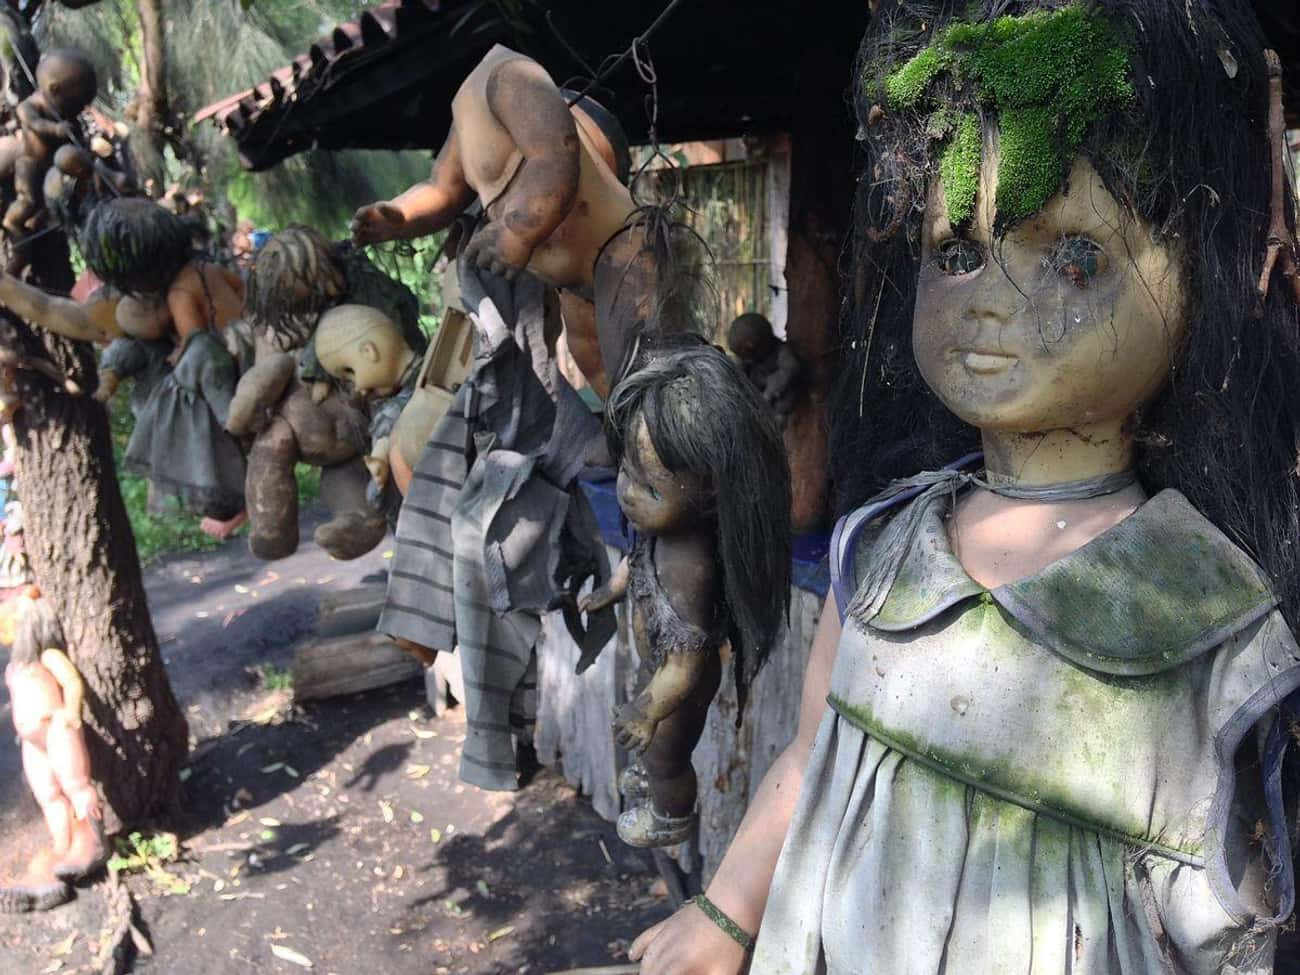 The Island Of The Dolls is listed (or ranked) 1 on the list Here Are The Most Haunted Places You Can Visit In Mexico City